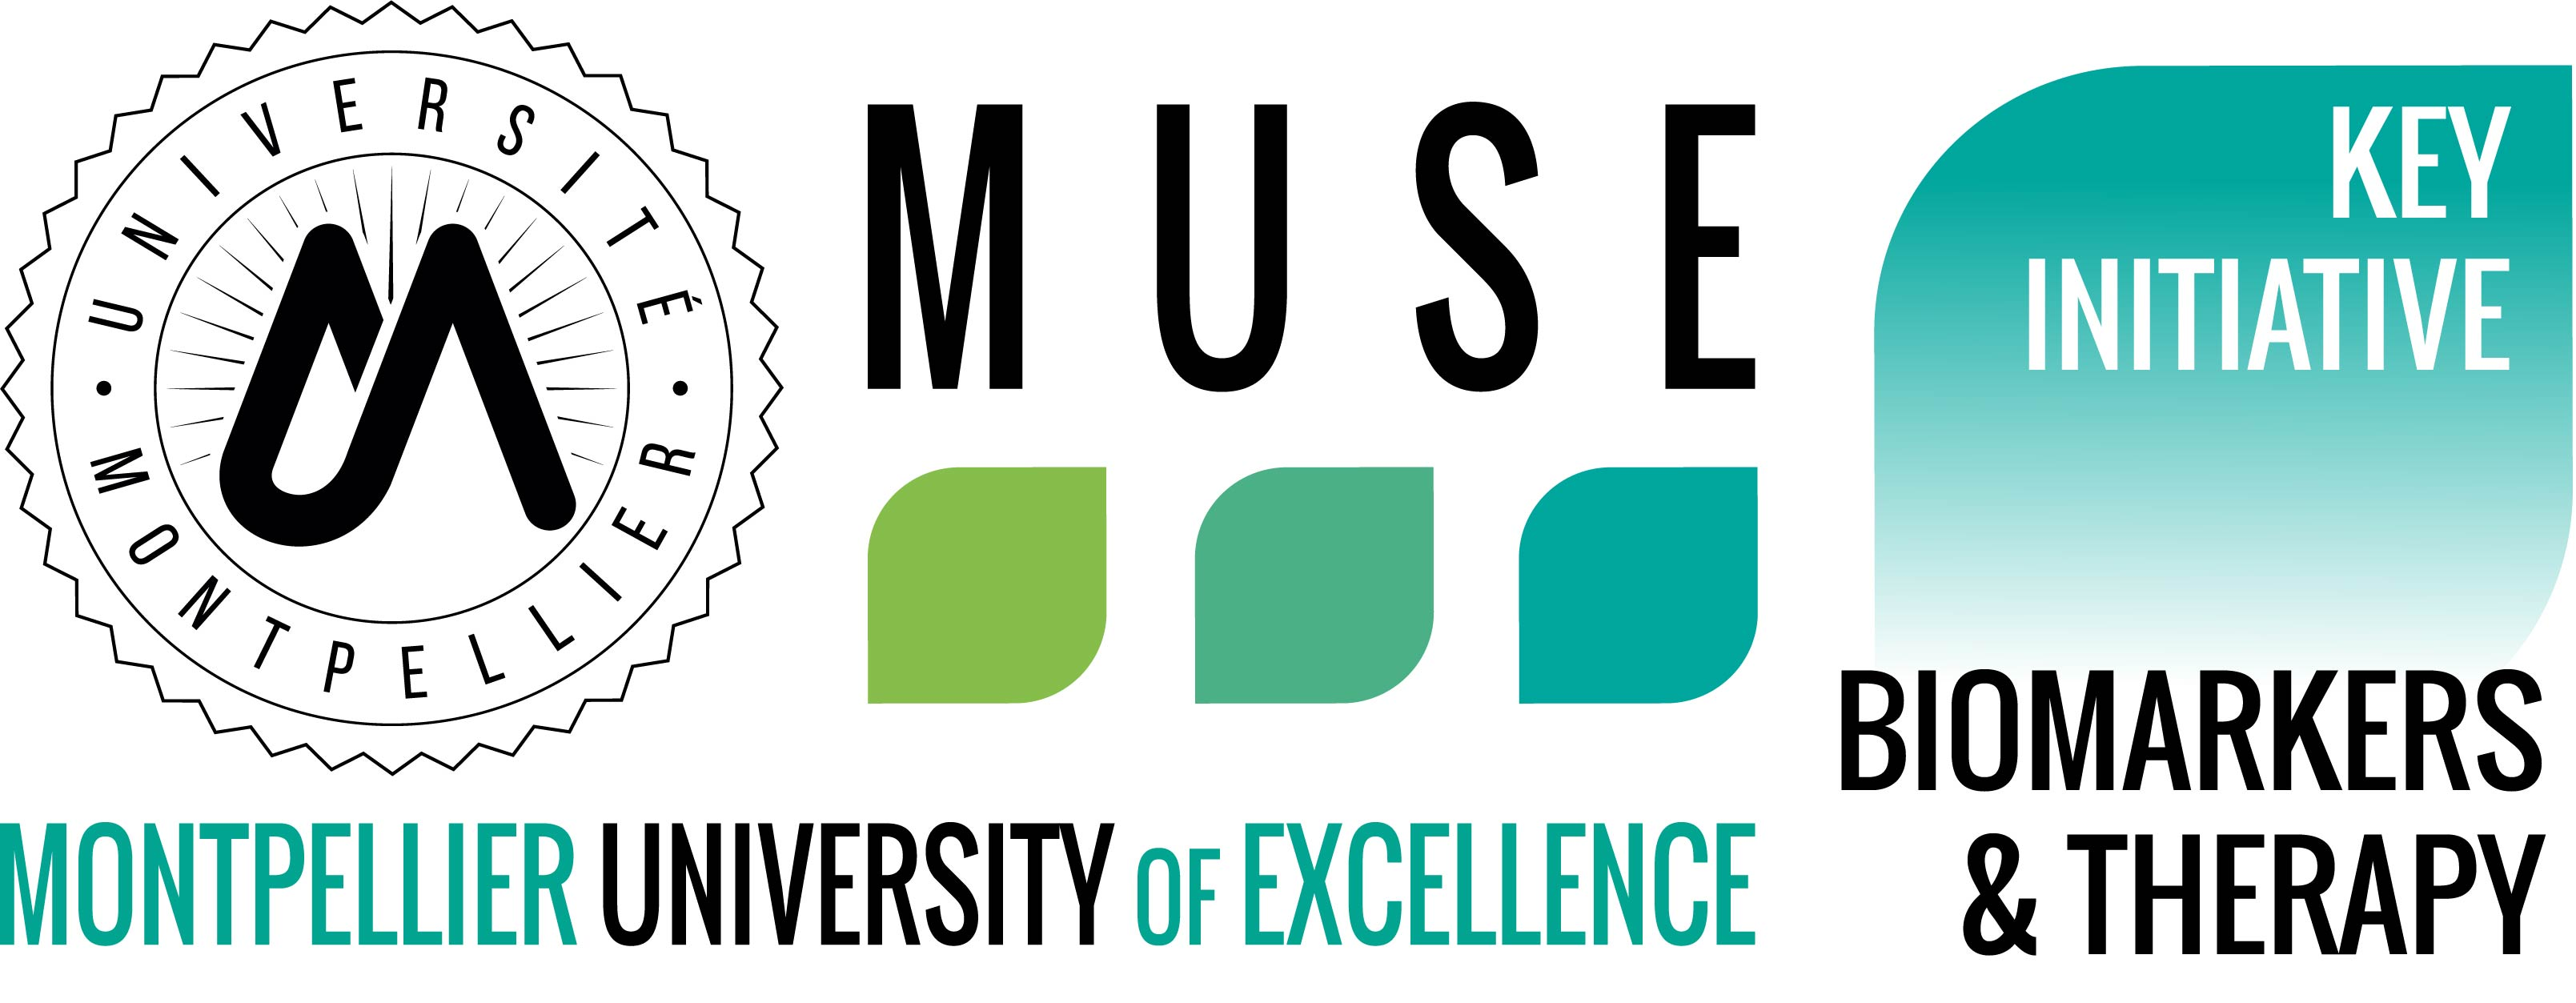 https://muse.edu.umontpellier.fr/files/2019/01/Logo_MUSE_KIM_BT_Original.jpg